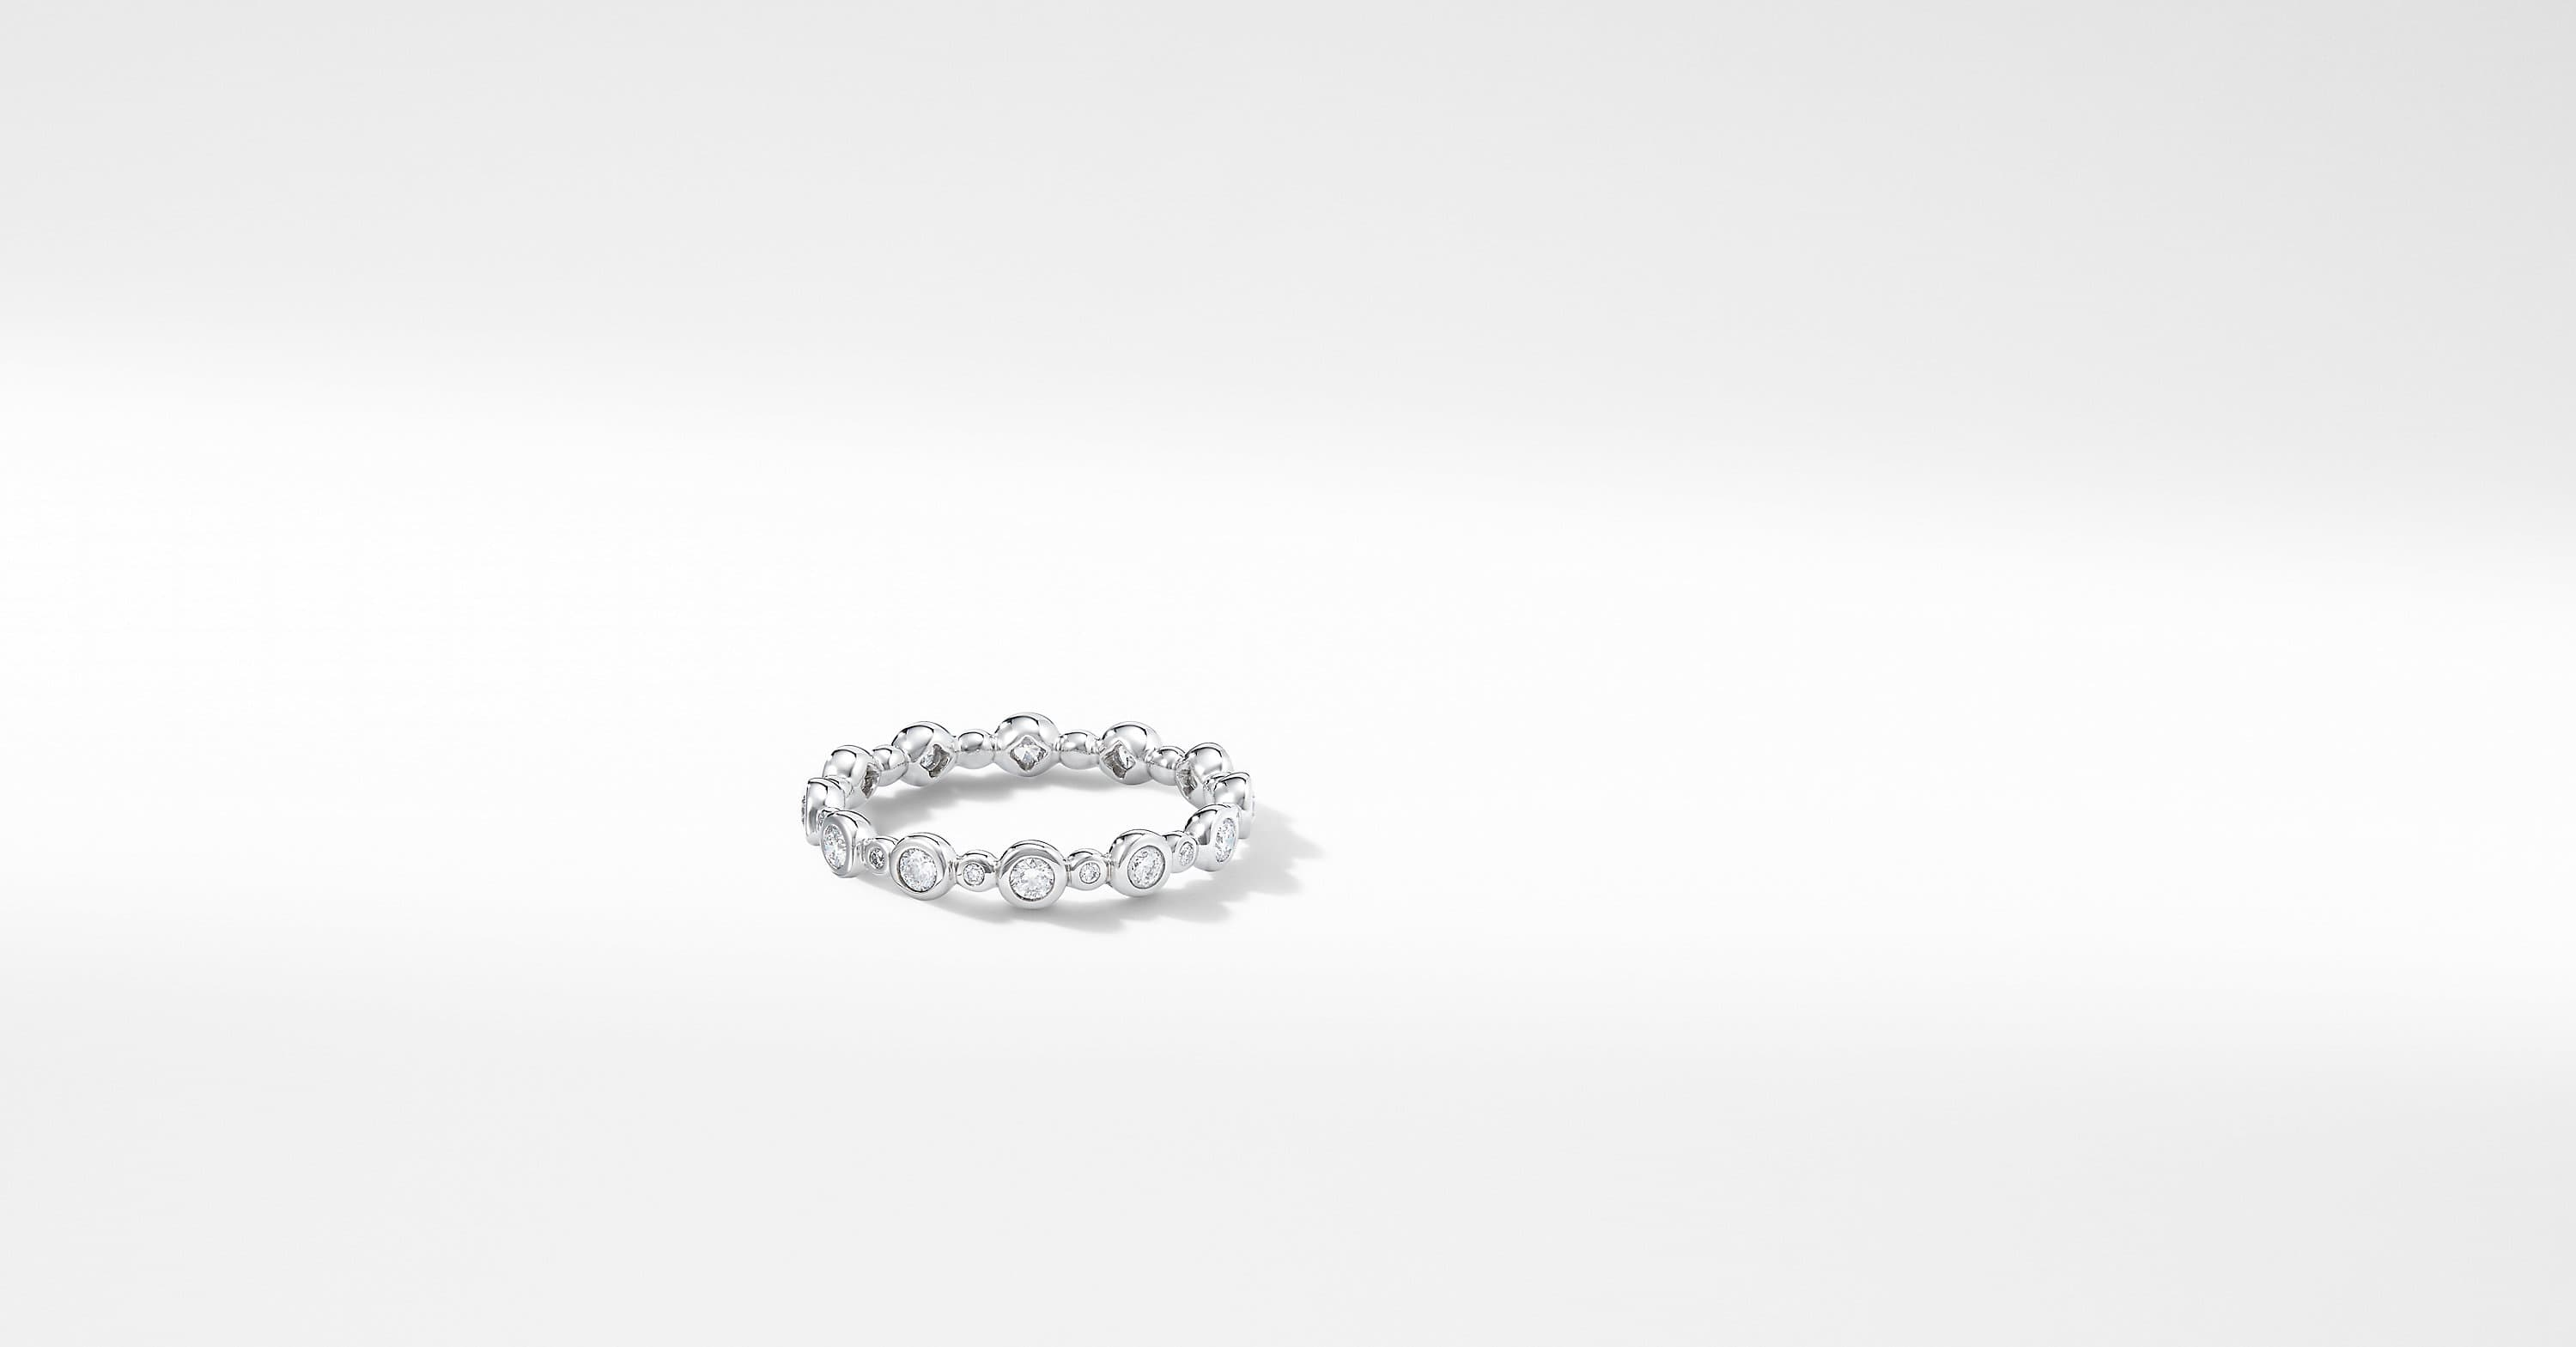 DY Starlight All Pavé Band Ring with Diamonds in Platinum